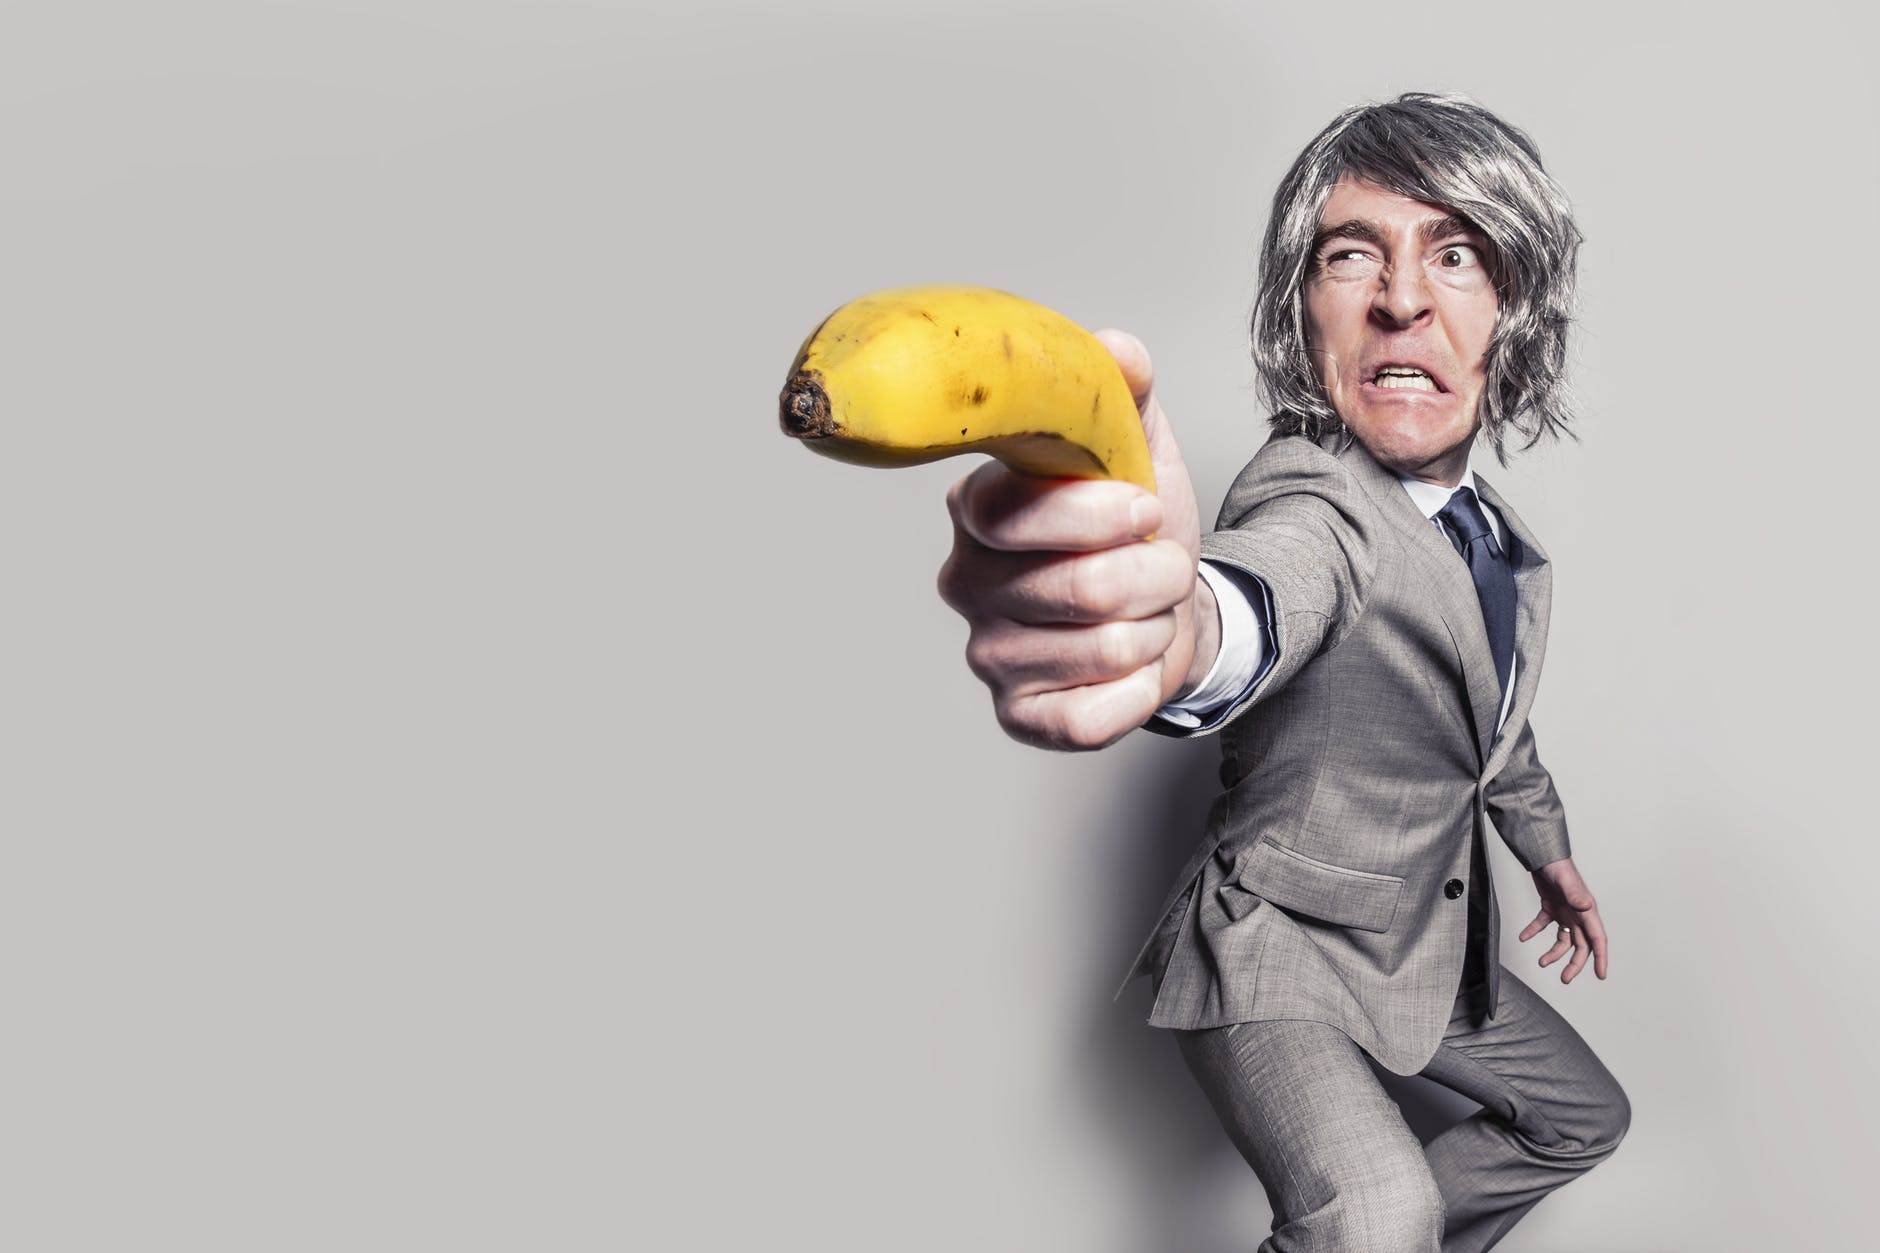 man in gray suit jacket holding yellow banana fruit while making face